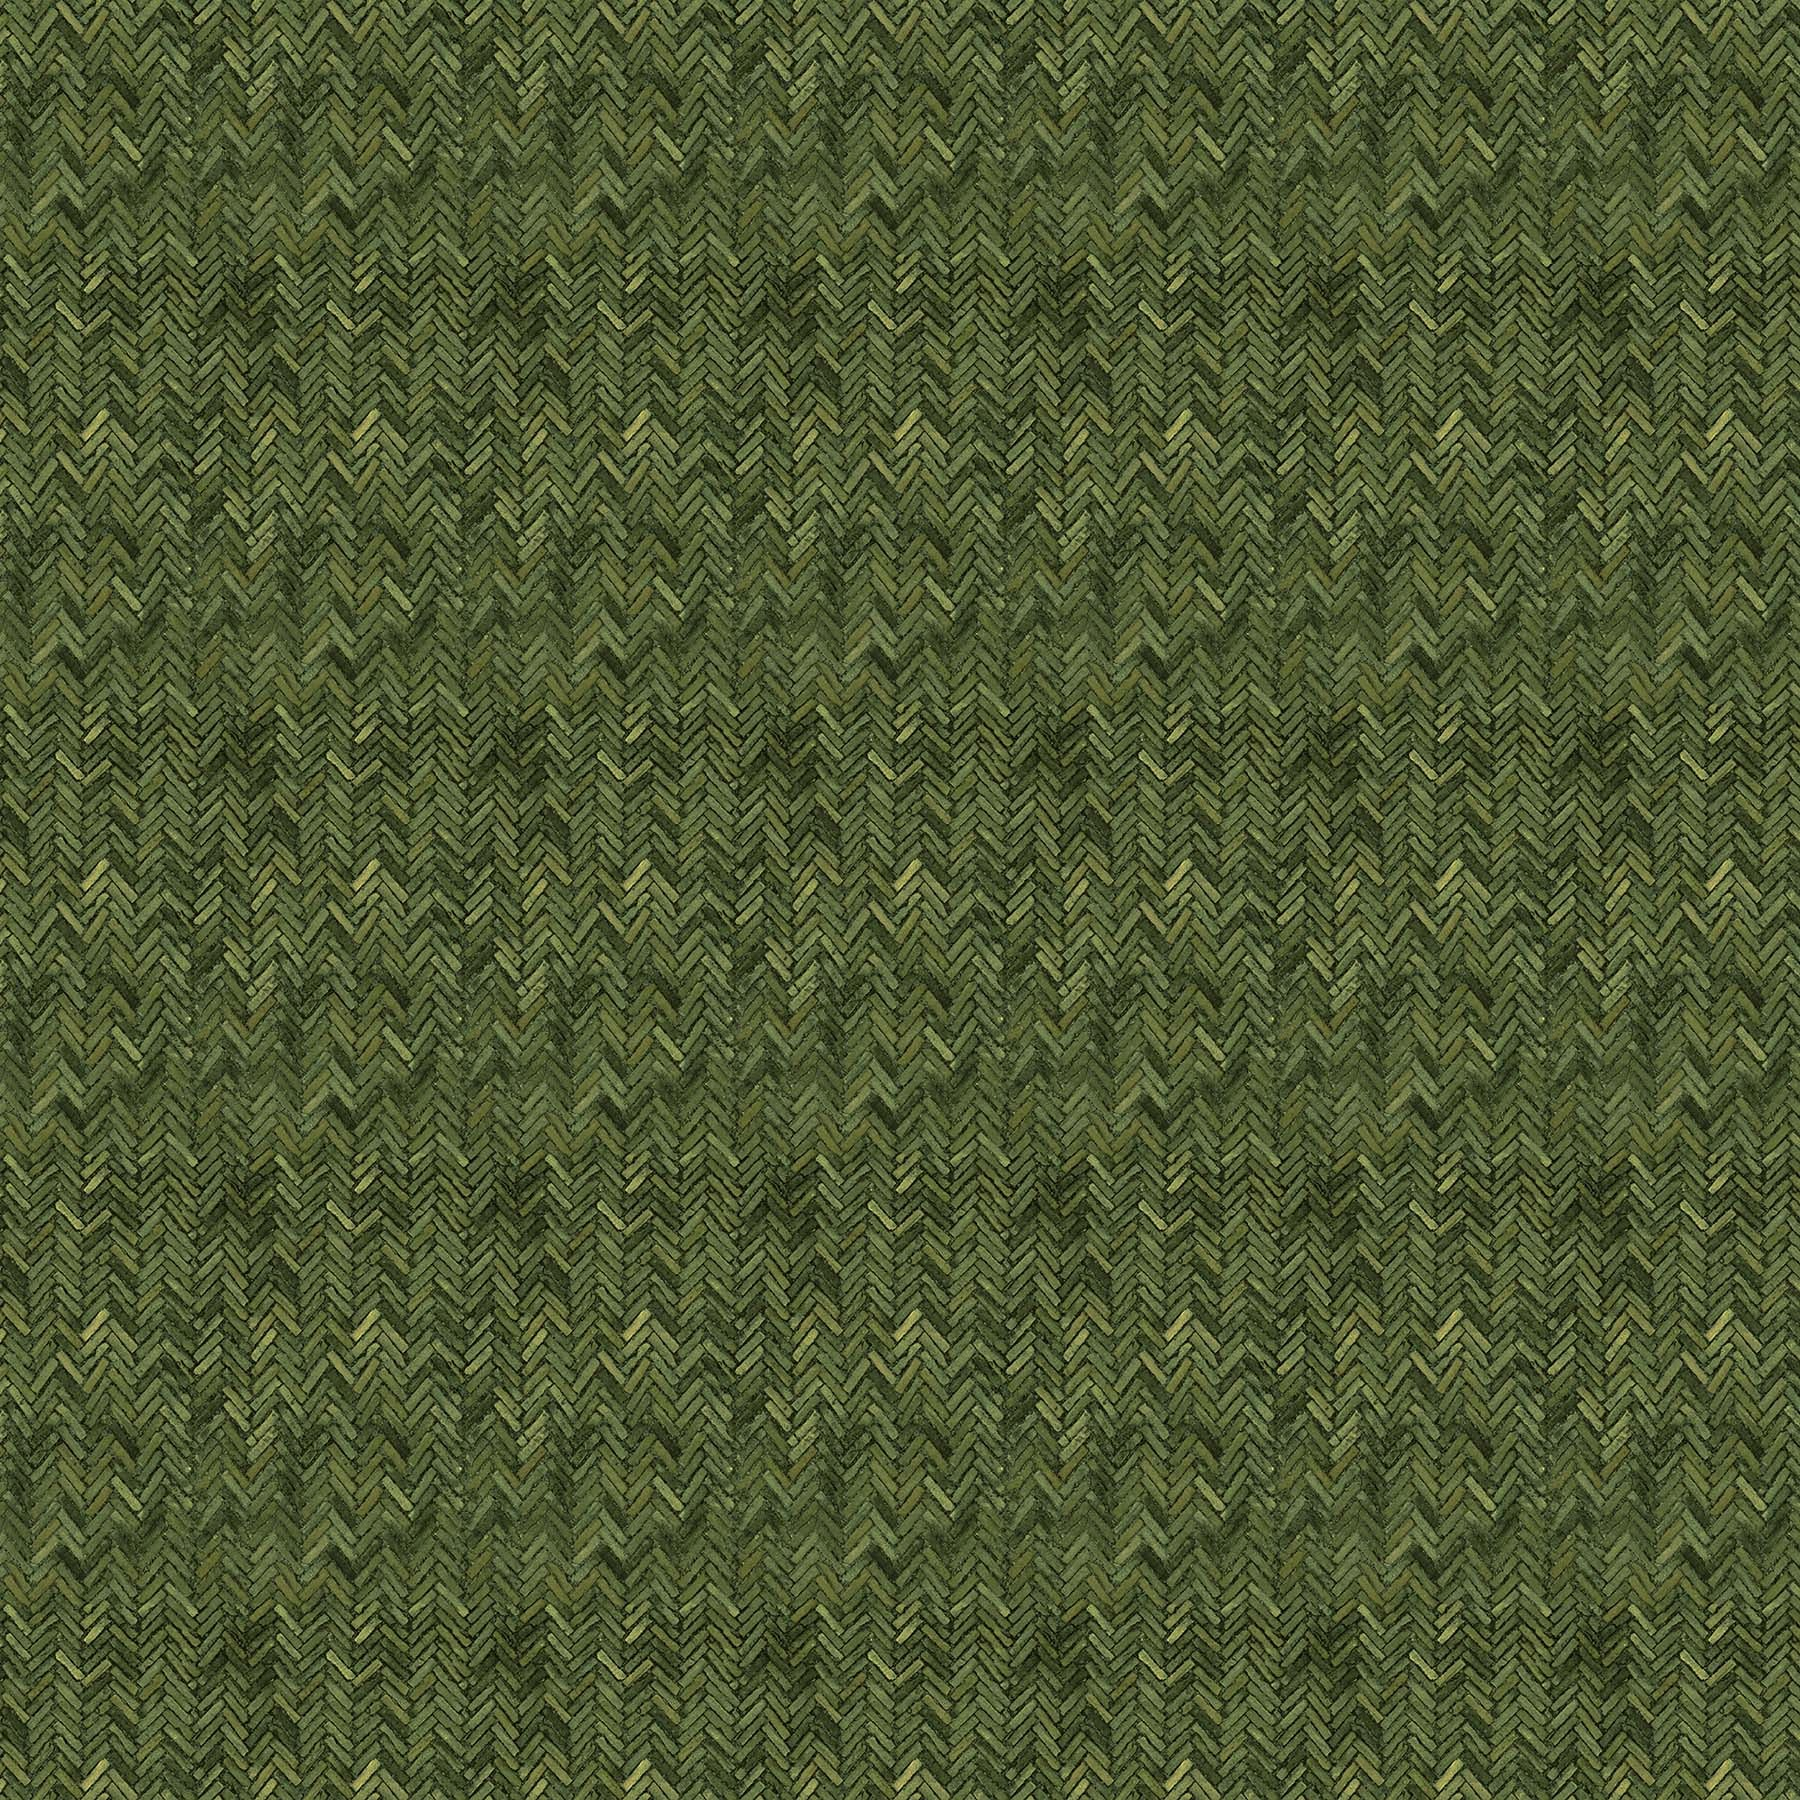 FLANNEL Lakeside Lodge - Green Herringbone F23560-76